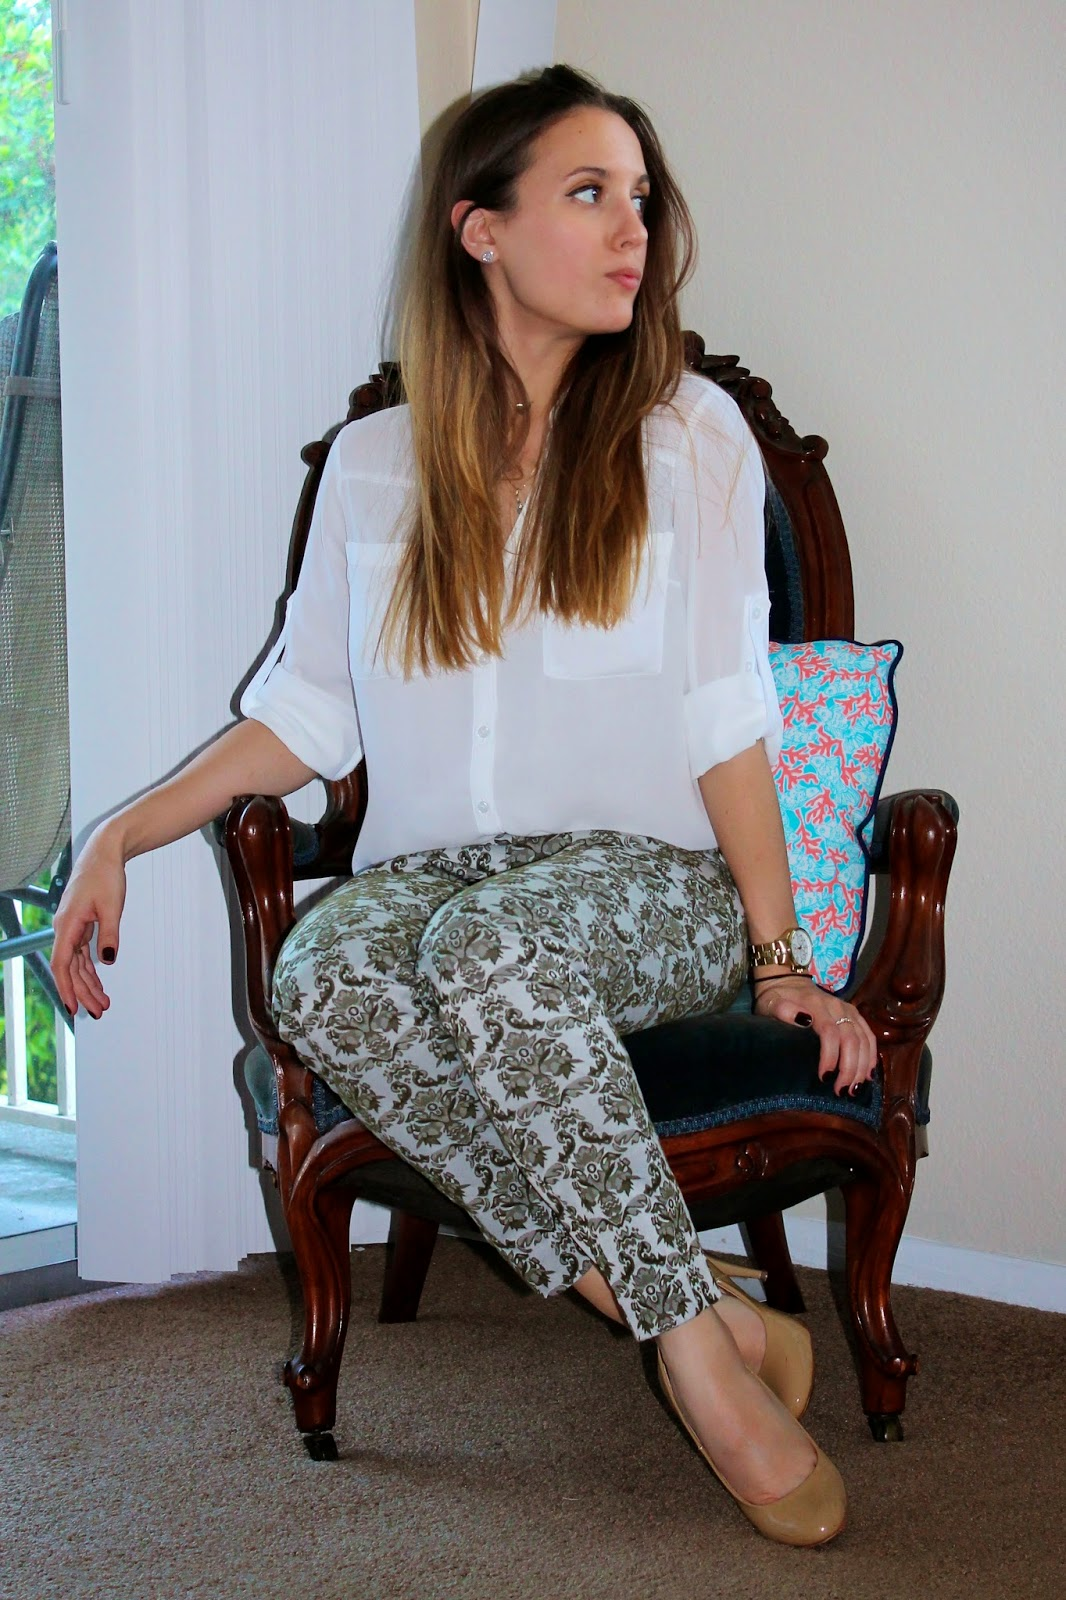 Anthropologie, Express, Timex, Steve Madden, classic, jaquard, damask, fashion, style, fashion blog, Miami fashion blogger, what I wore, classic, southern, prep